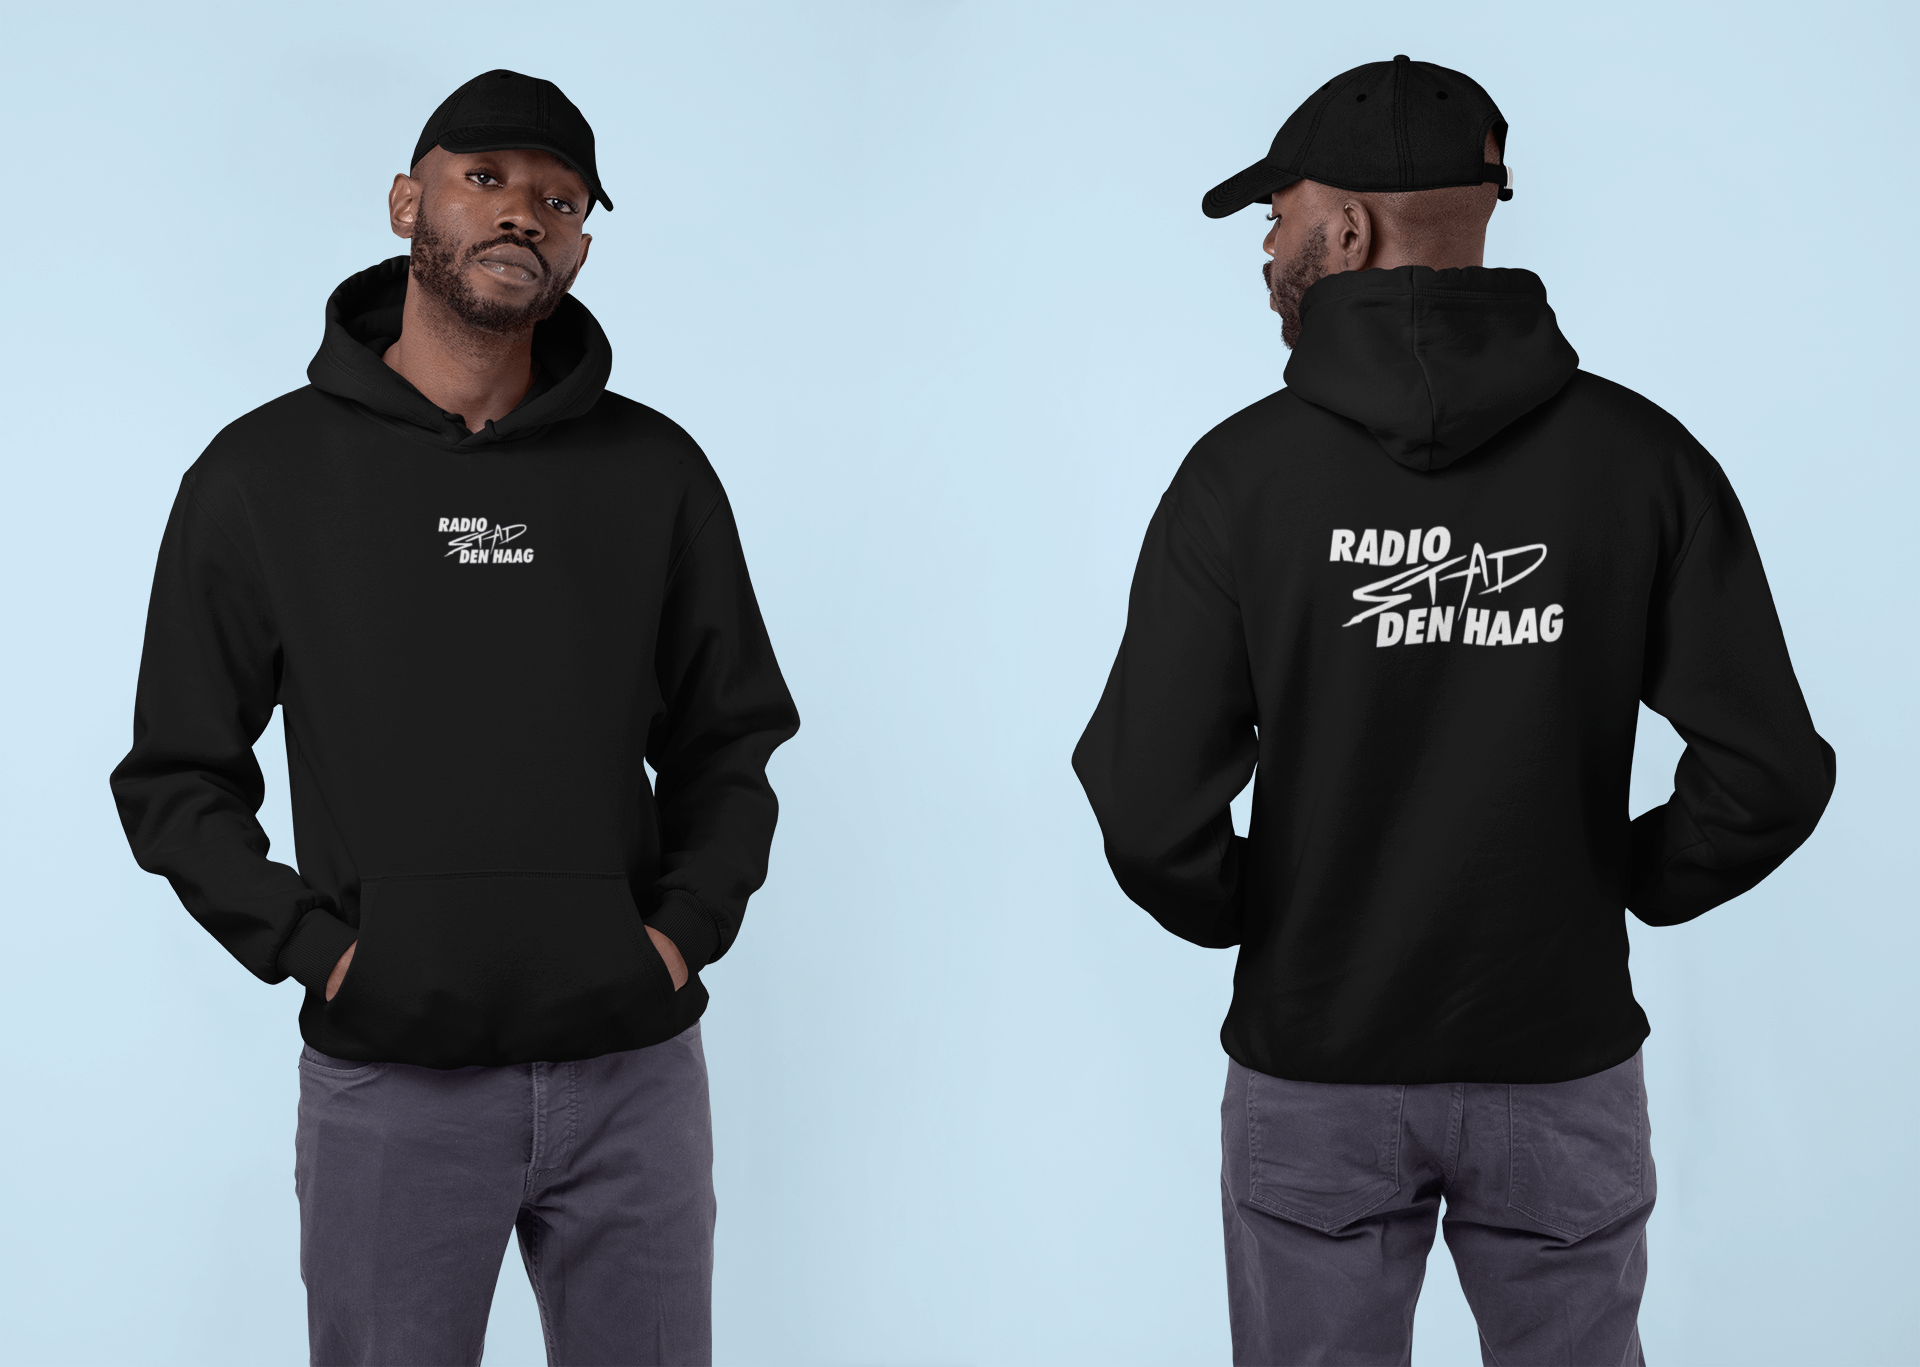 both-sides-hoodie-mockup-of-a-man-wearing-a-hat-in-a-studio-29642-2